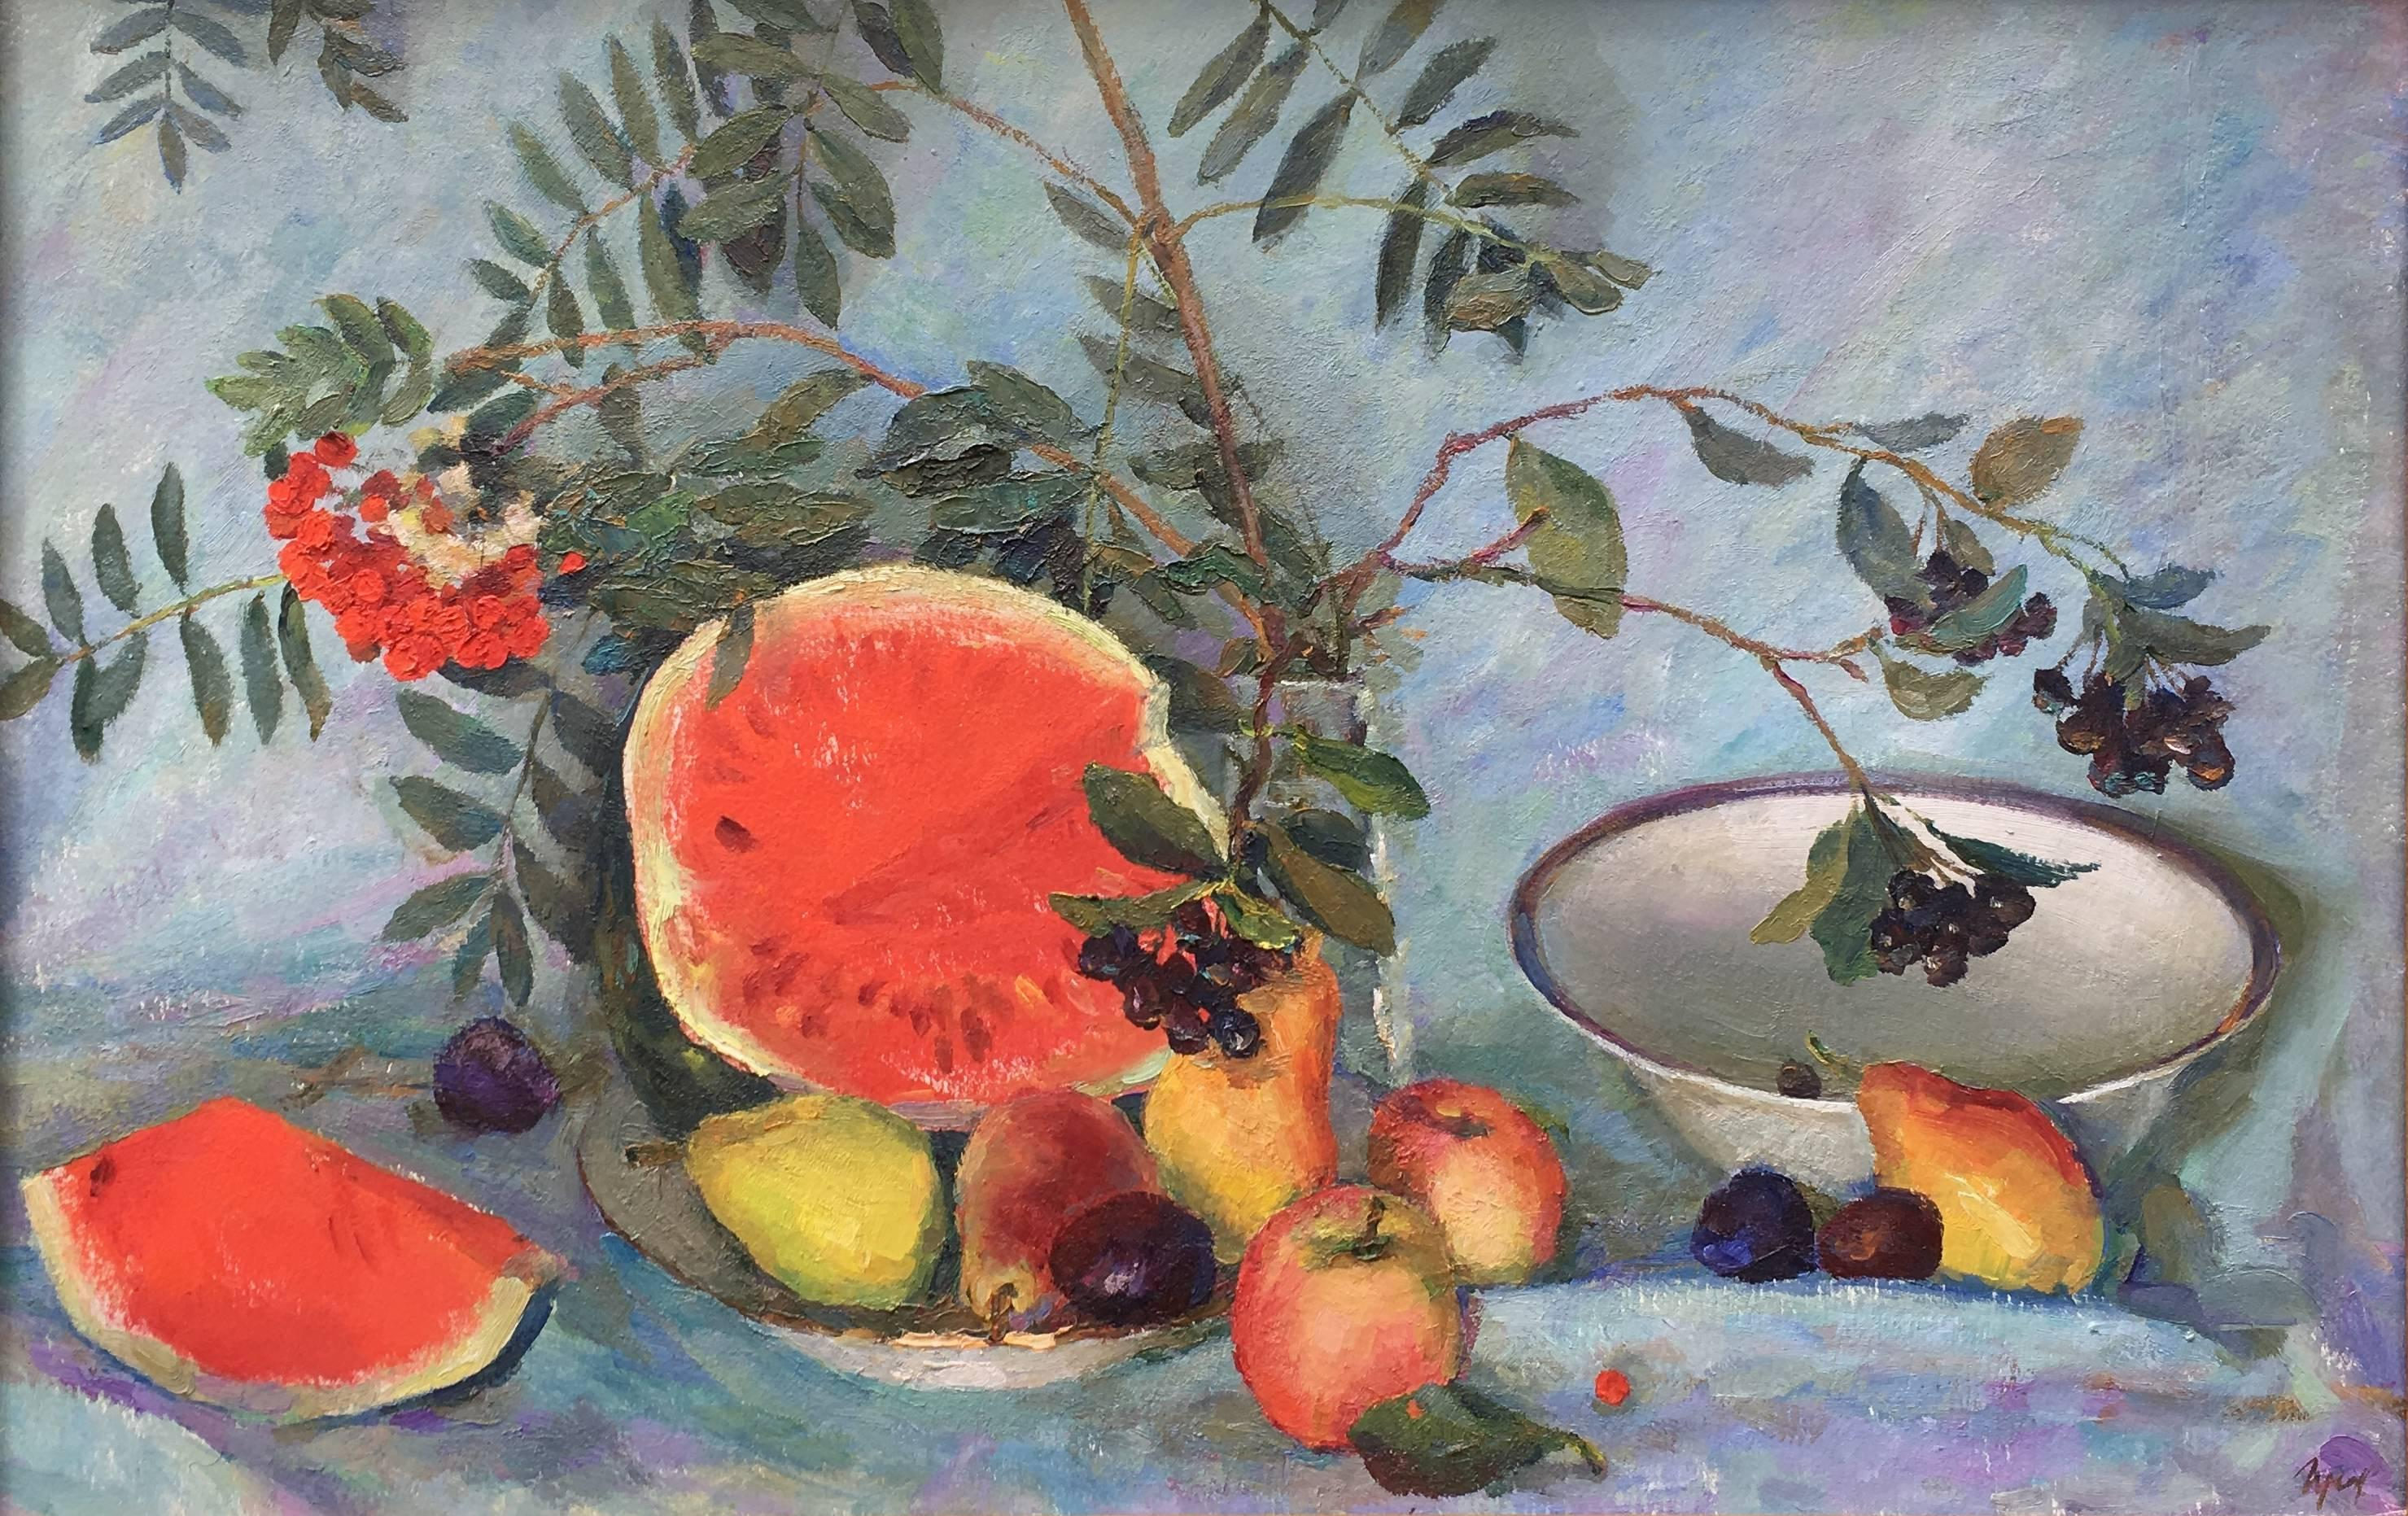 Still life with watermelon, oil on panel, post-impressionist style